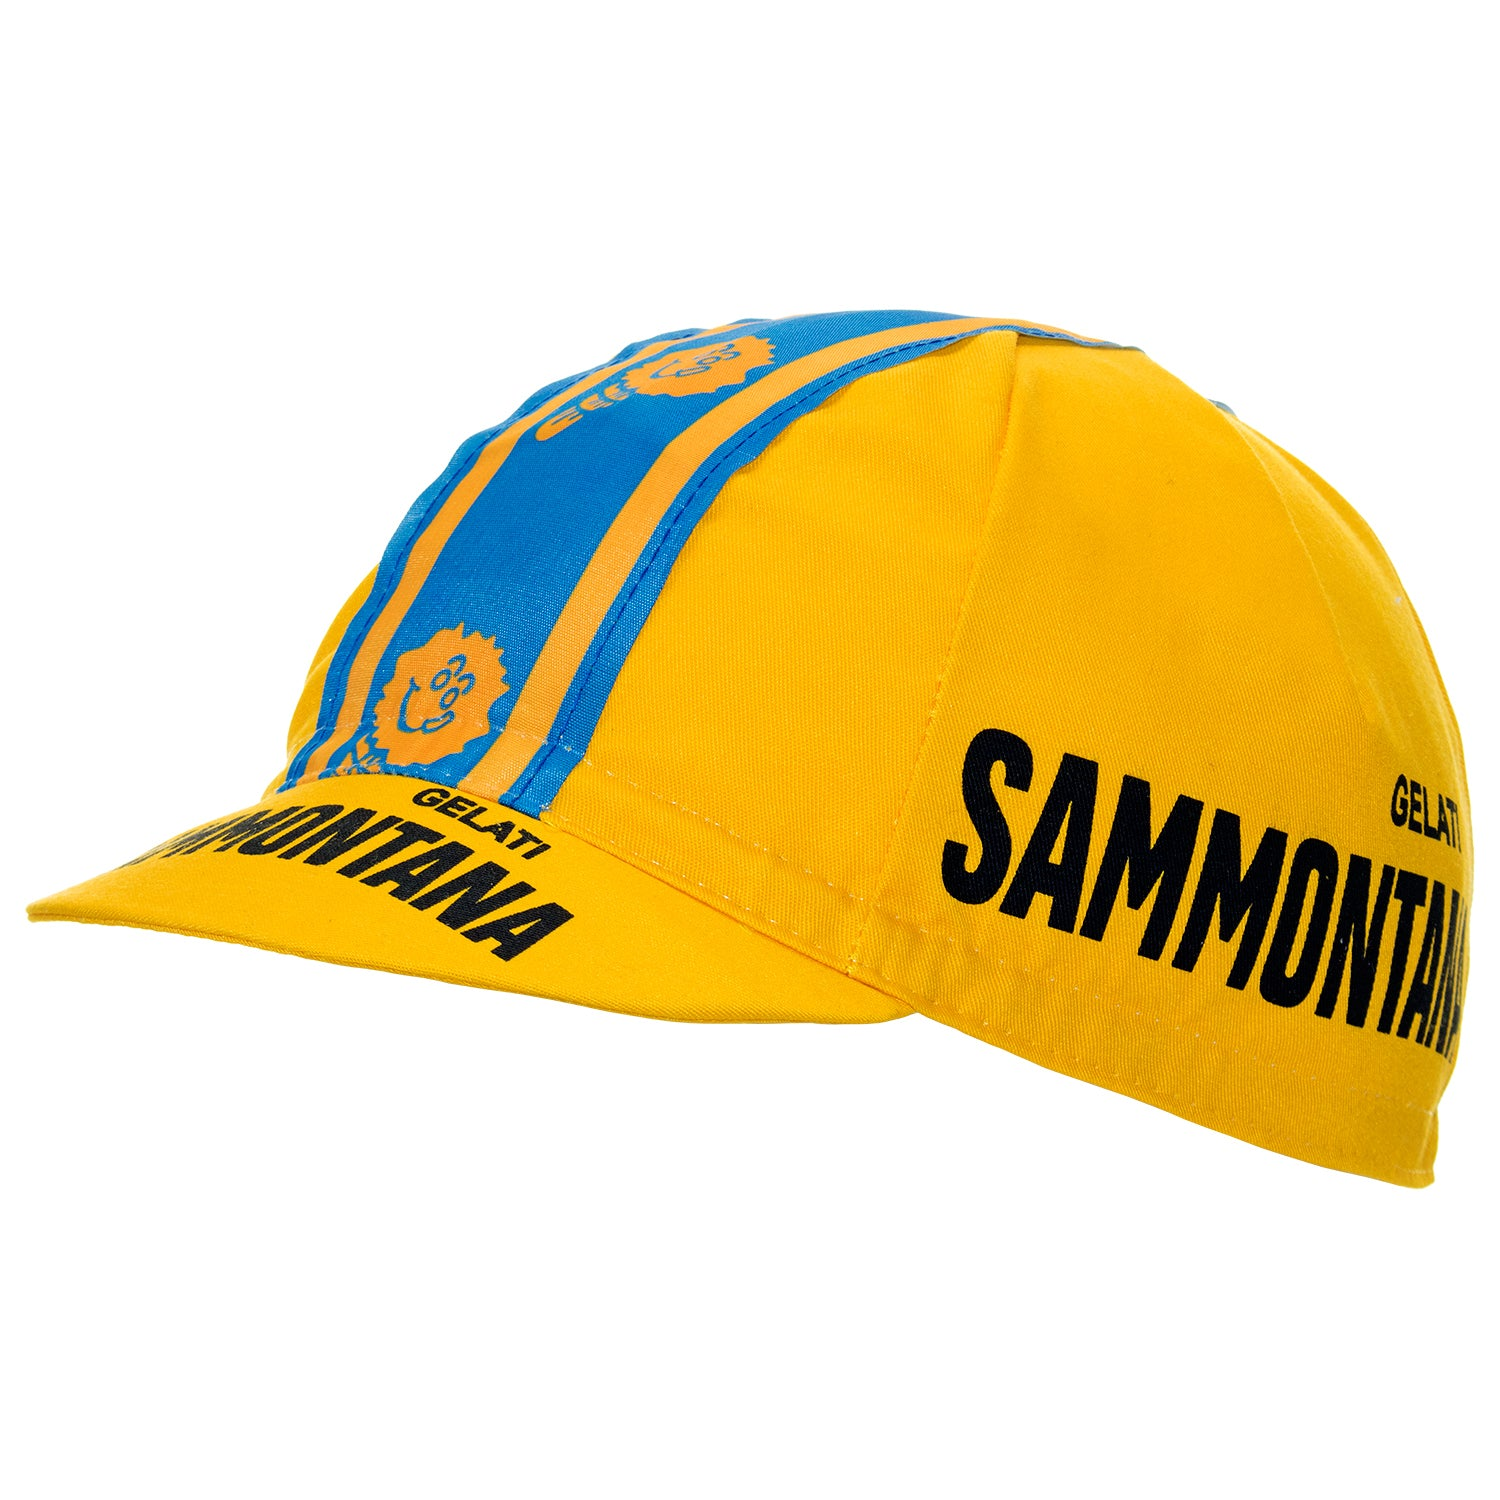 Gelati Sammontana Retro Cotton Cycling Cap